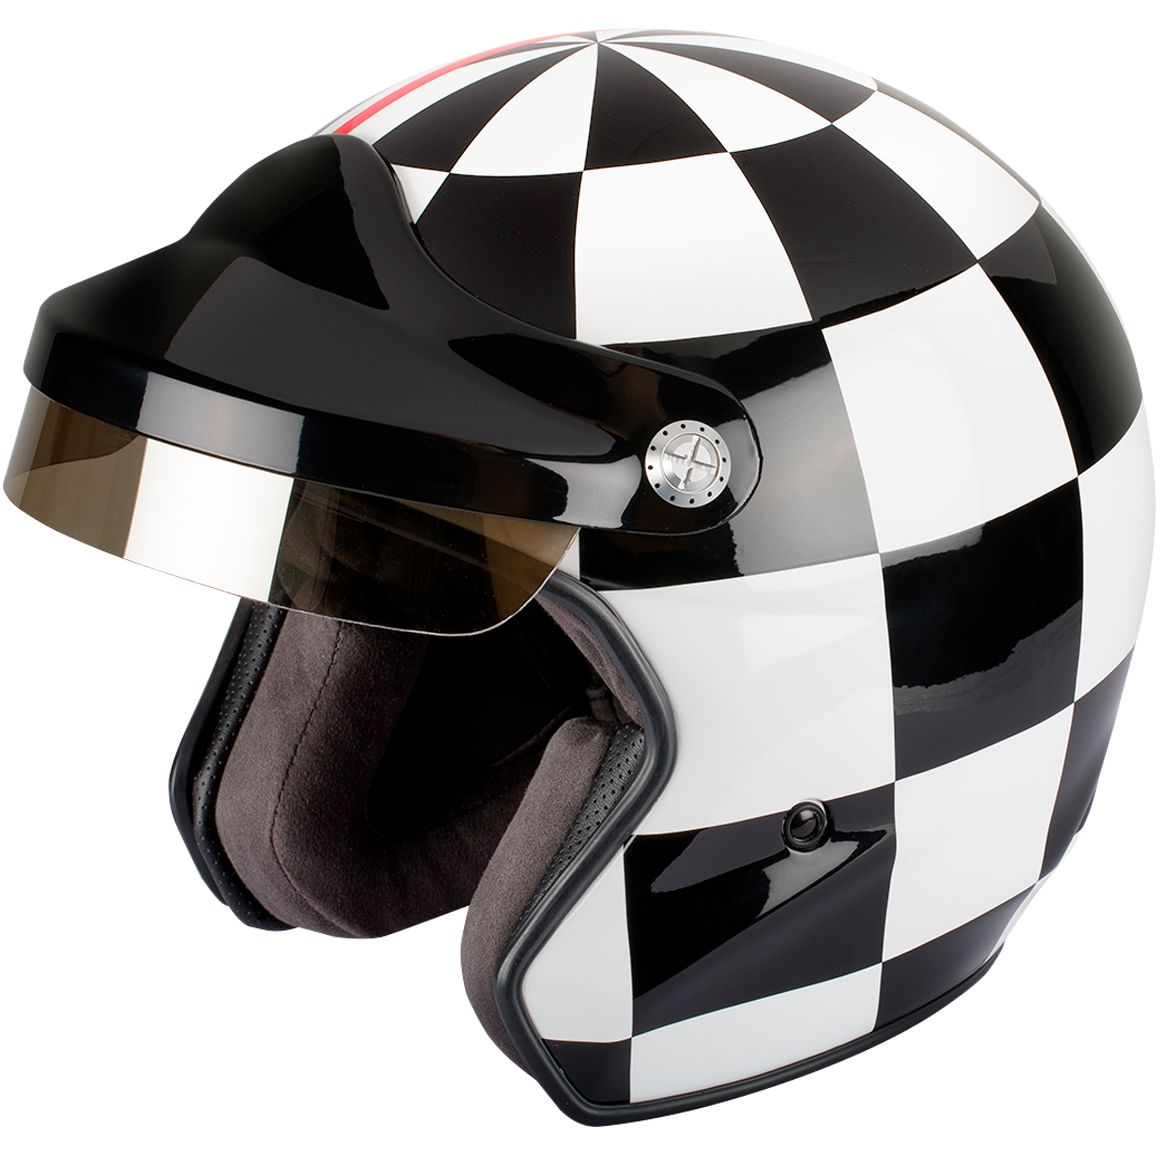 Casco Félix Motocyclette ST520 GRAND PRIX